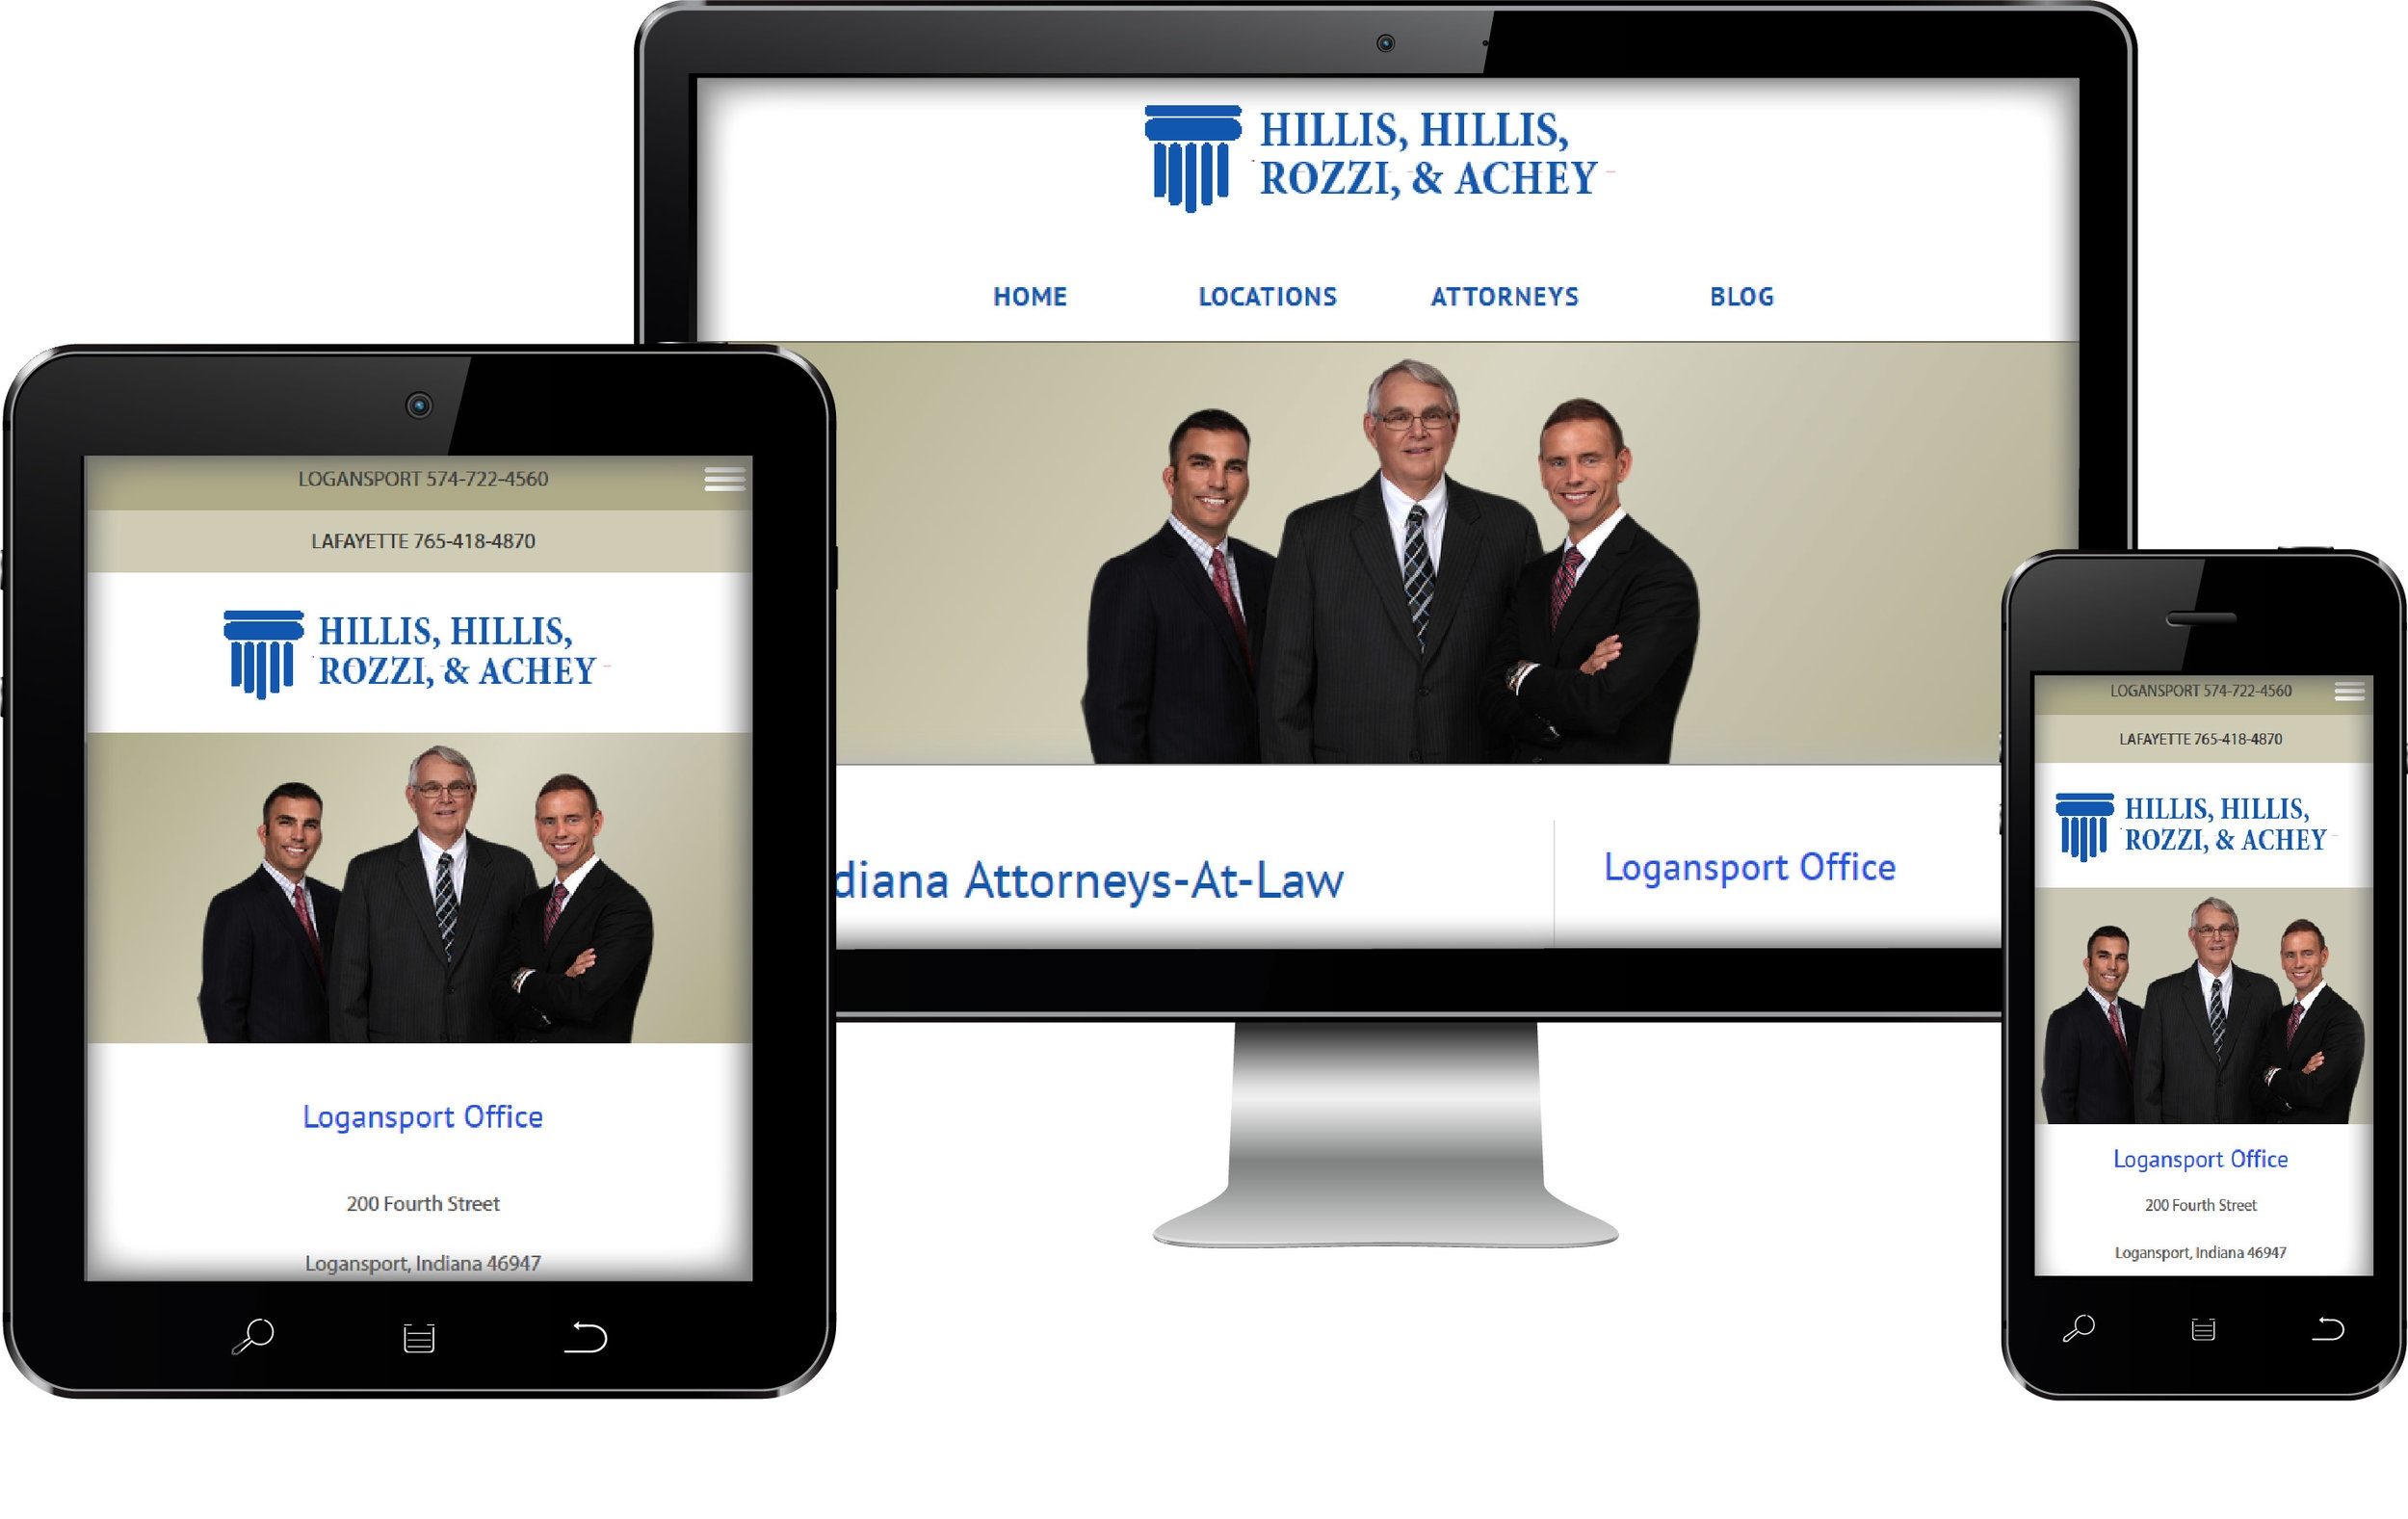 Logansport Attorney Web Site Design